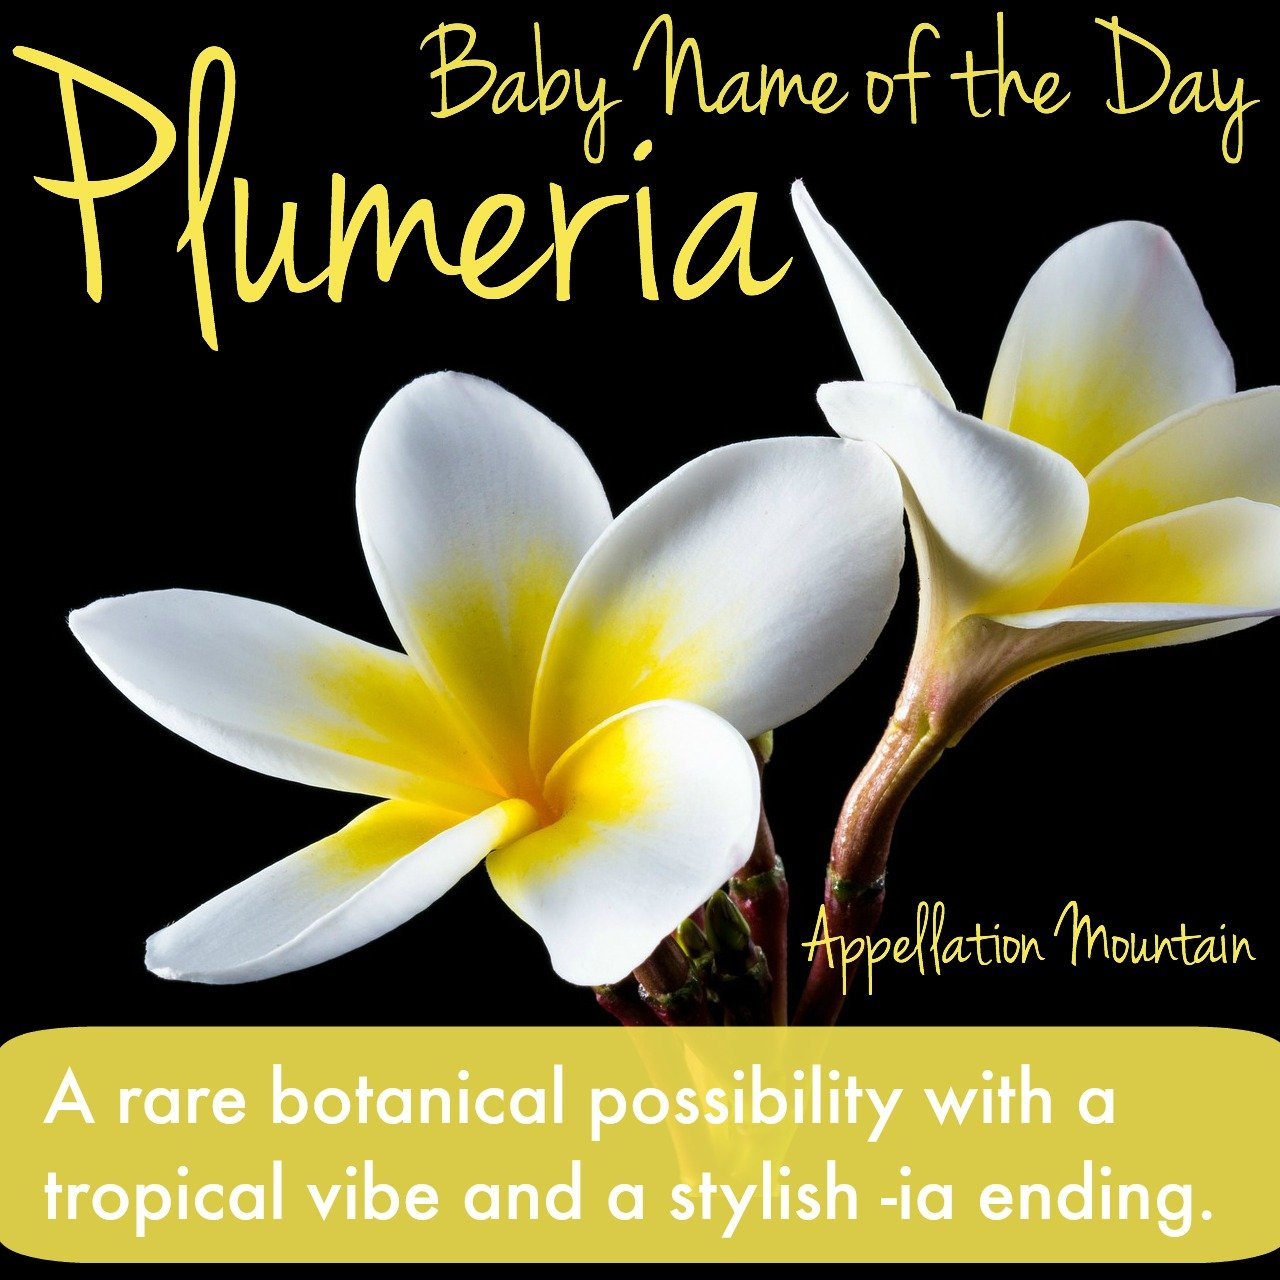 Plumeria: Baby Name of the Day - Appellation Mountain